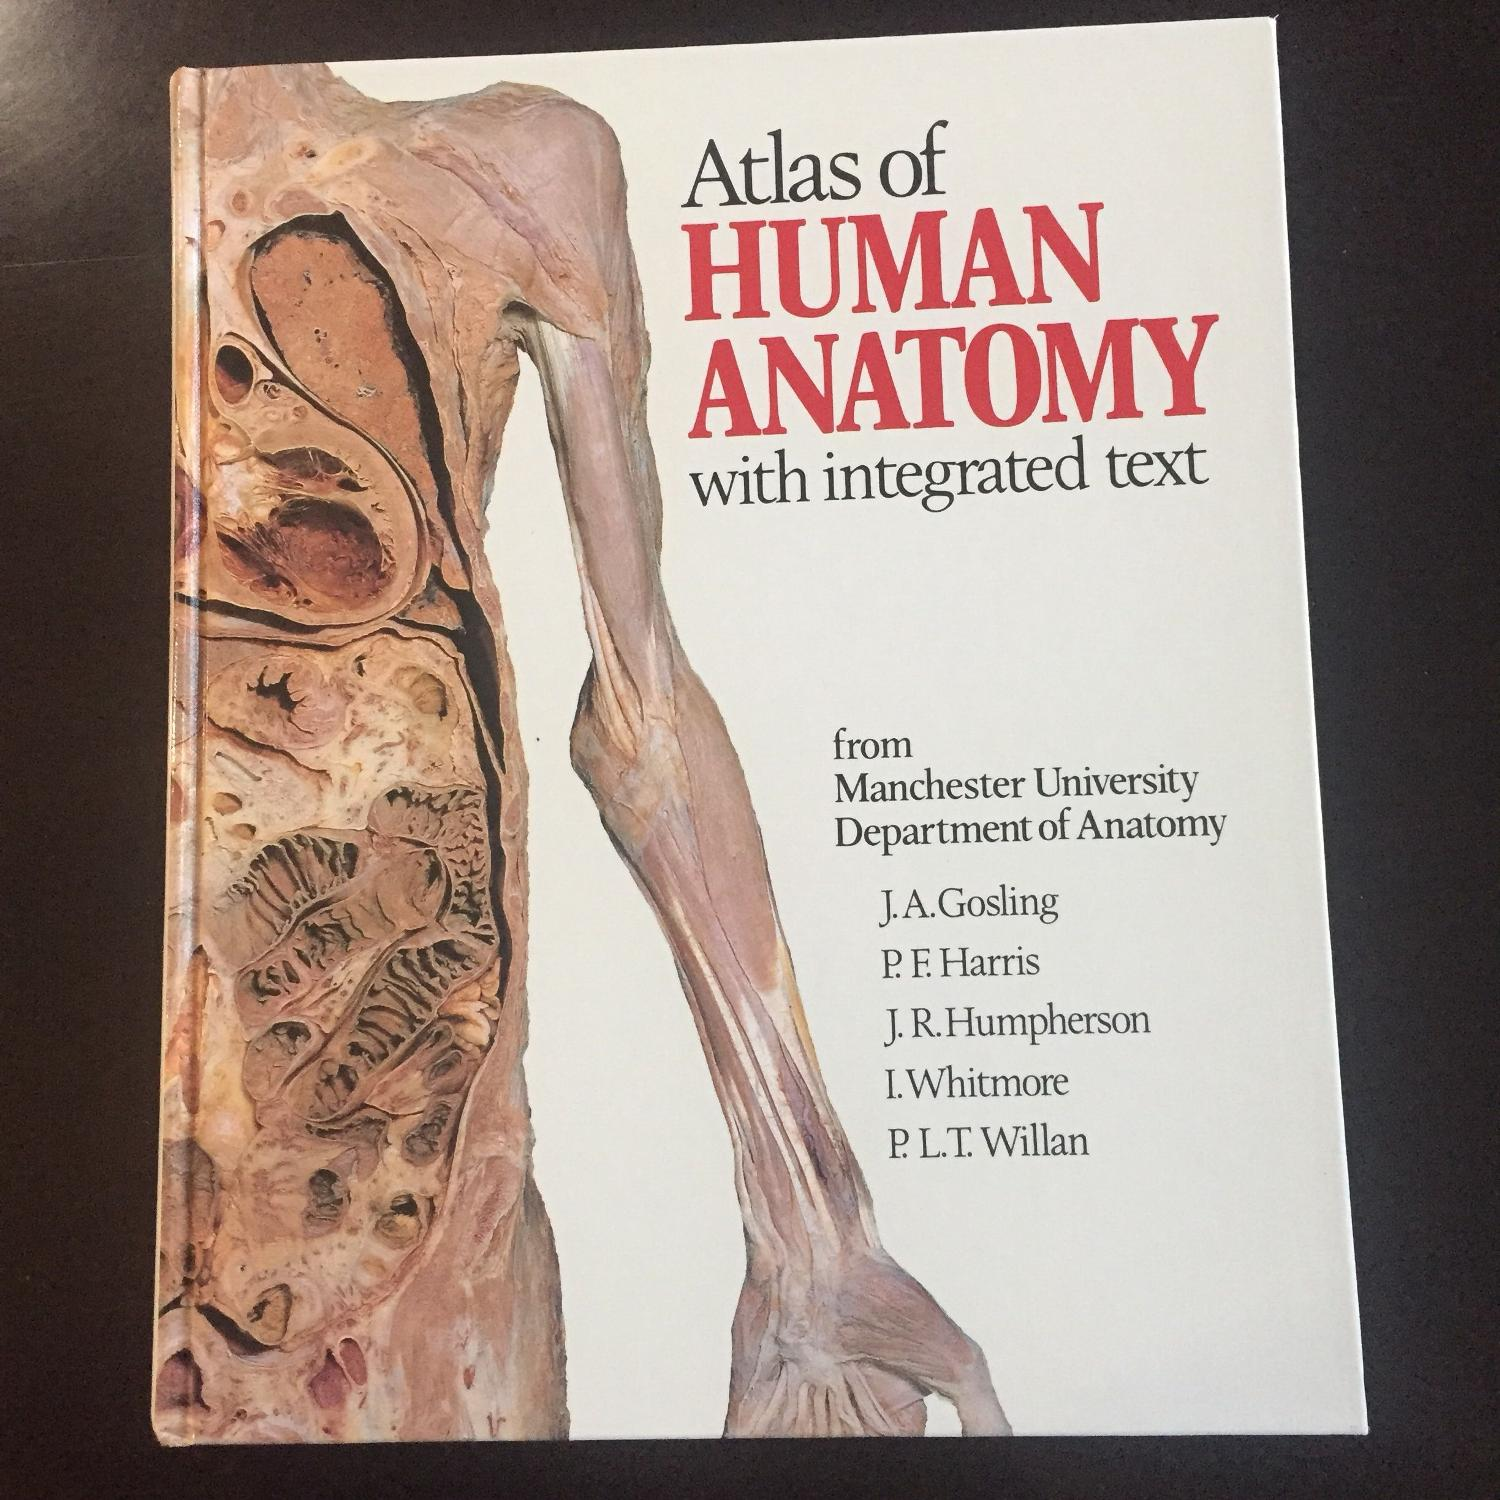 Find more Atlas Of Human Anatomy for sale at up to 90% off